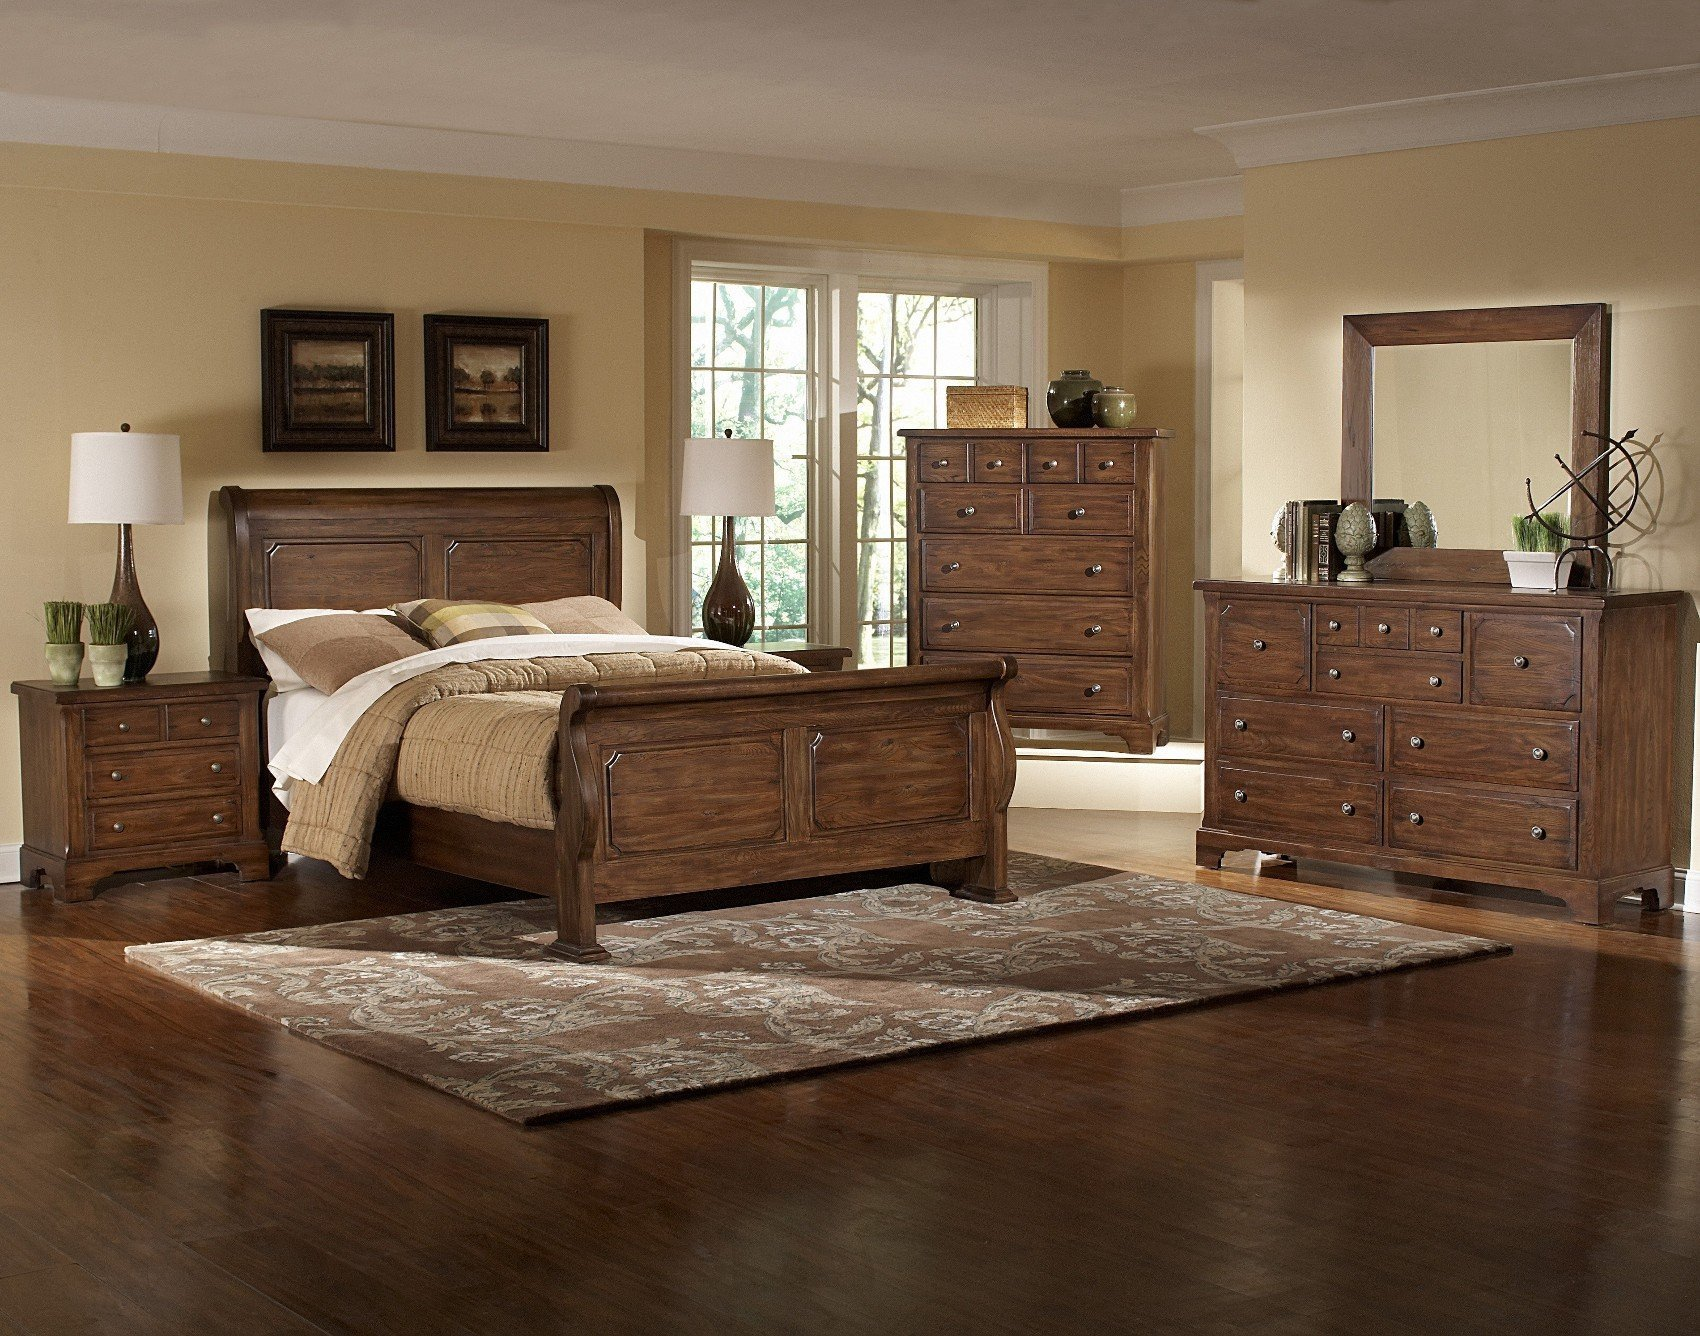 Solid Oak Bedroom Set Lovely Modern Wooden Bedroom Furniture Designs